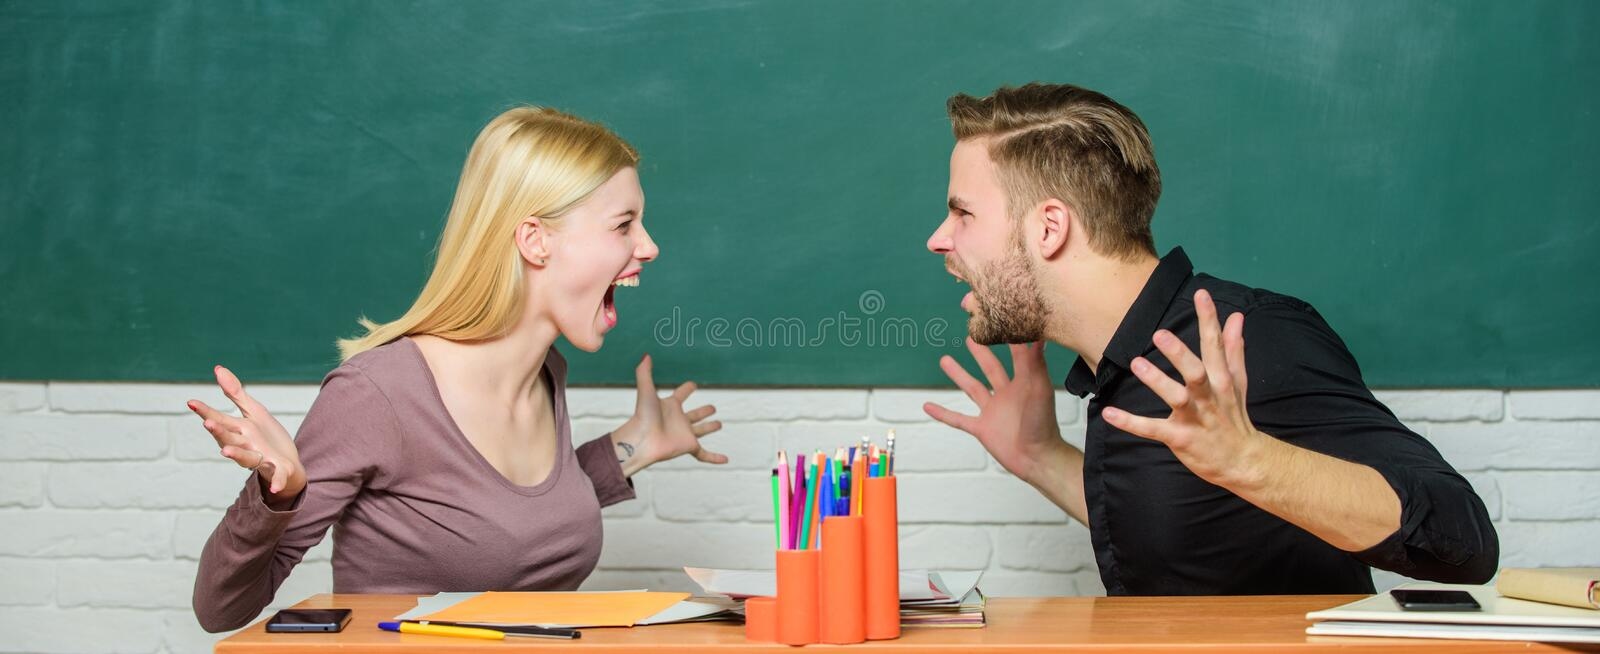 Compromise solution. College relations. Relations classmates. Students communicate classroom chalkboard background. Violence and bullying. Communication stock photo